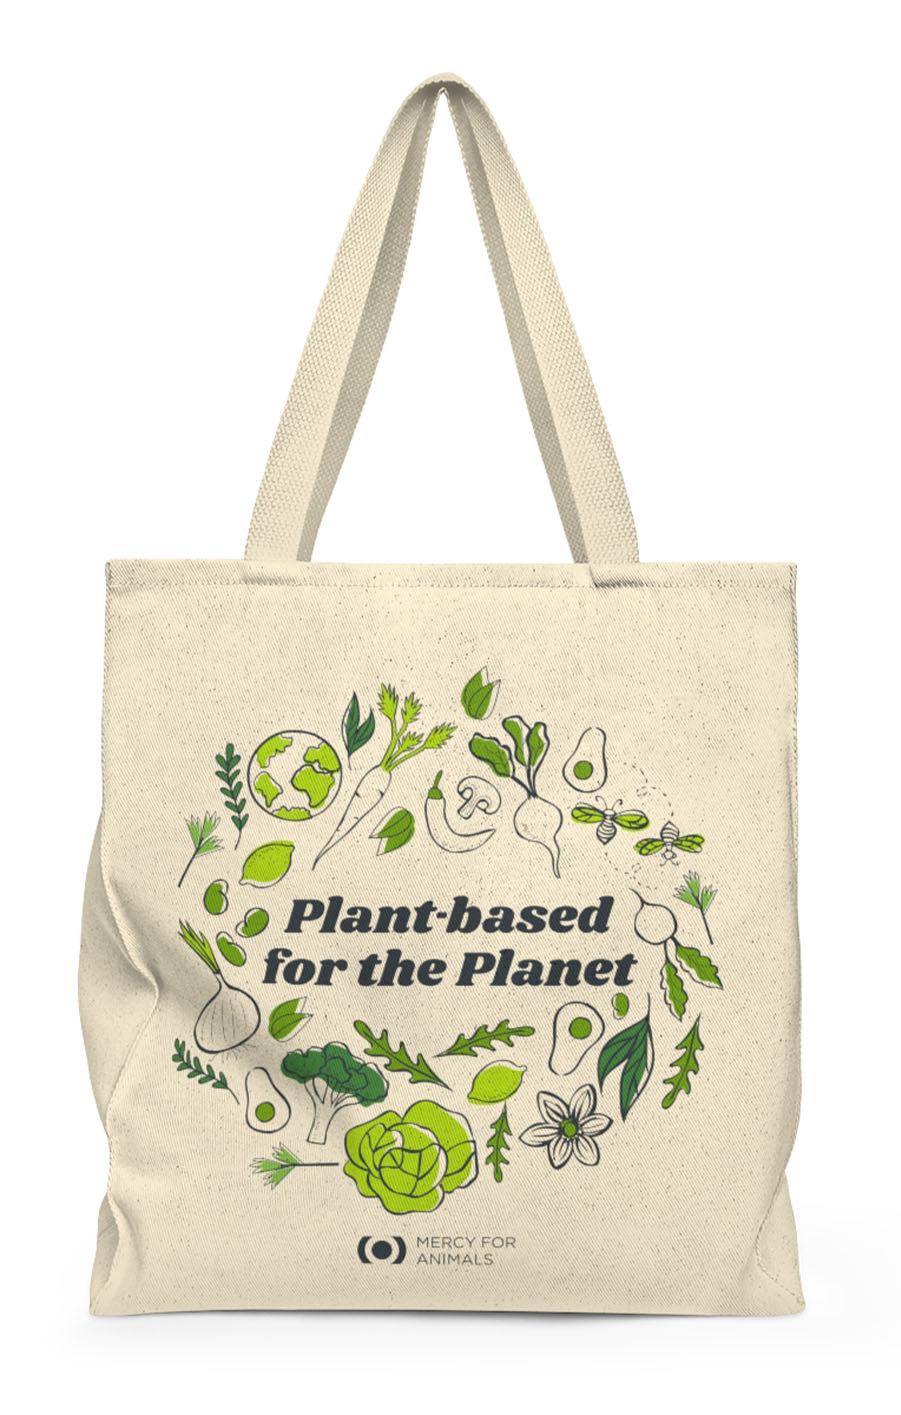 'For the Planet' Tote